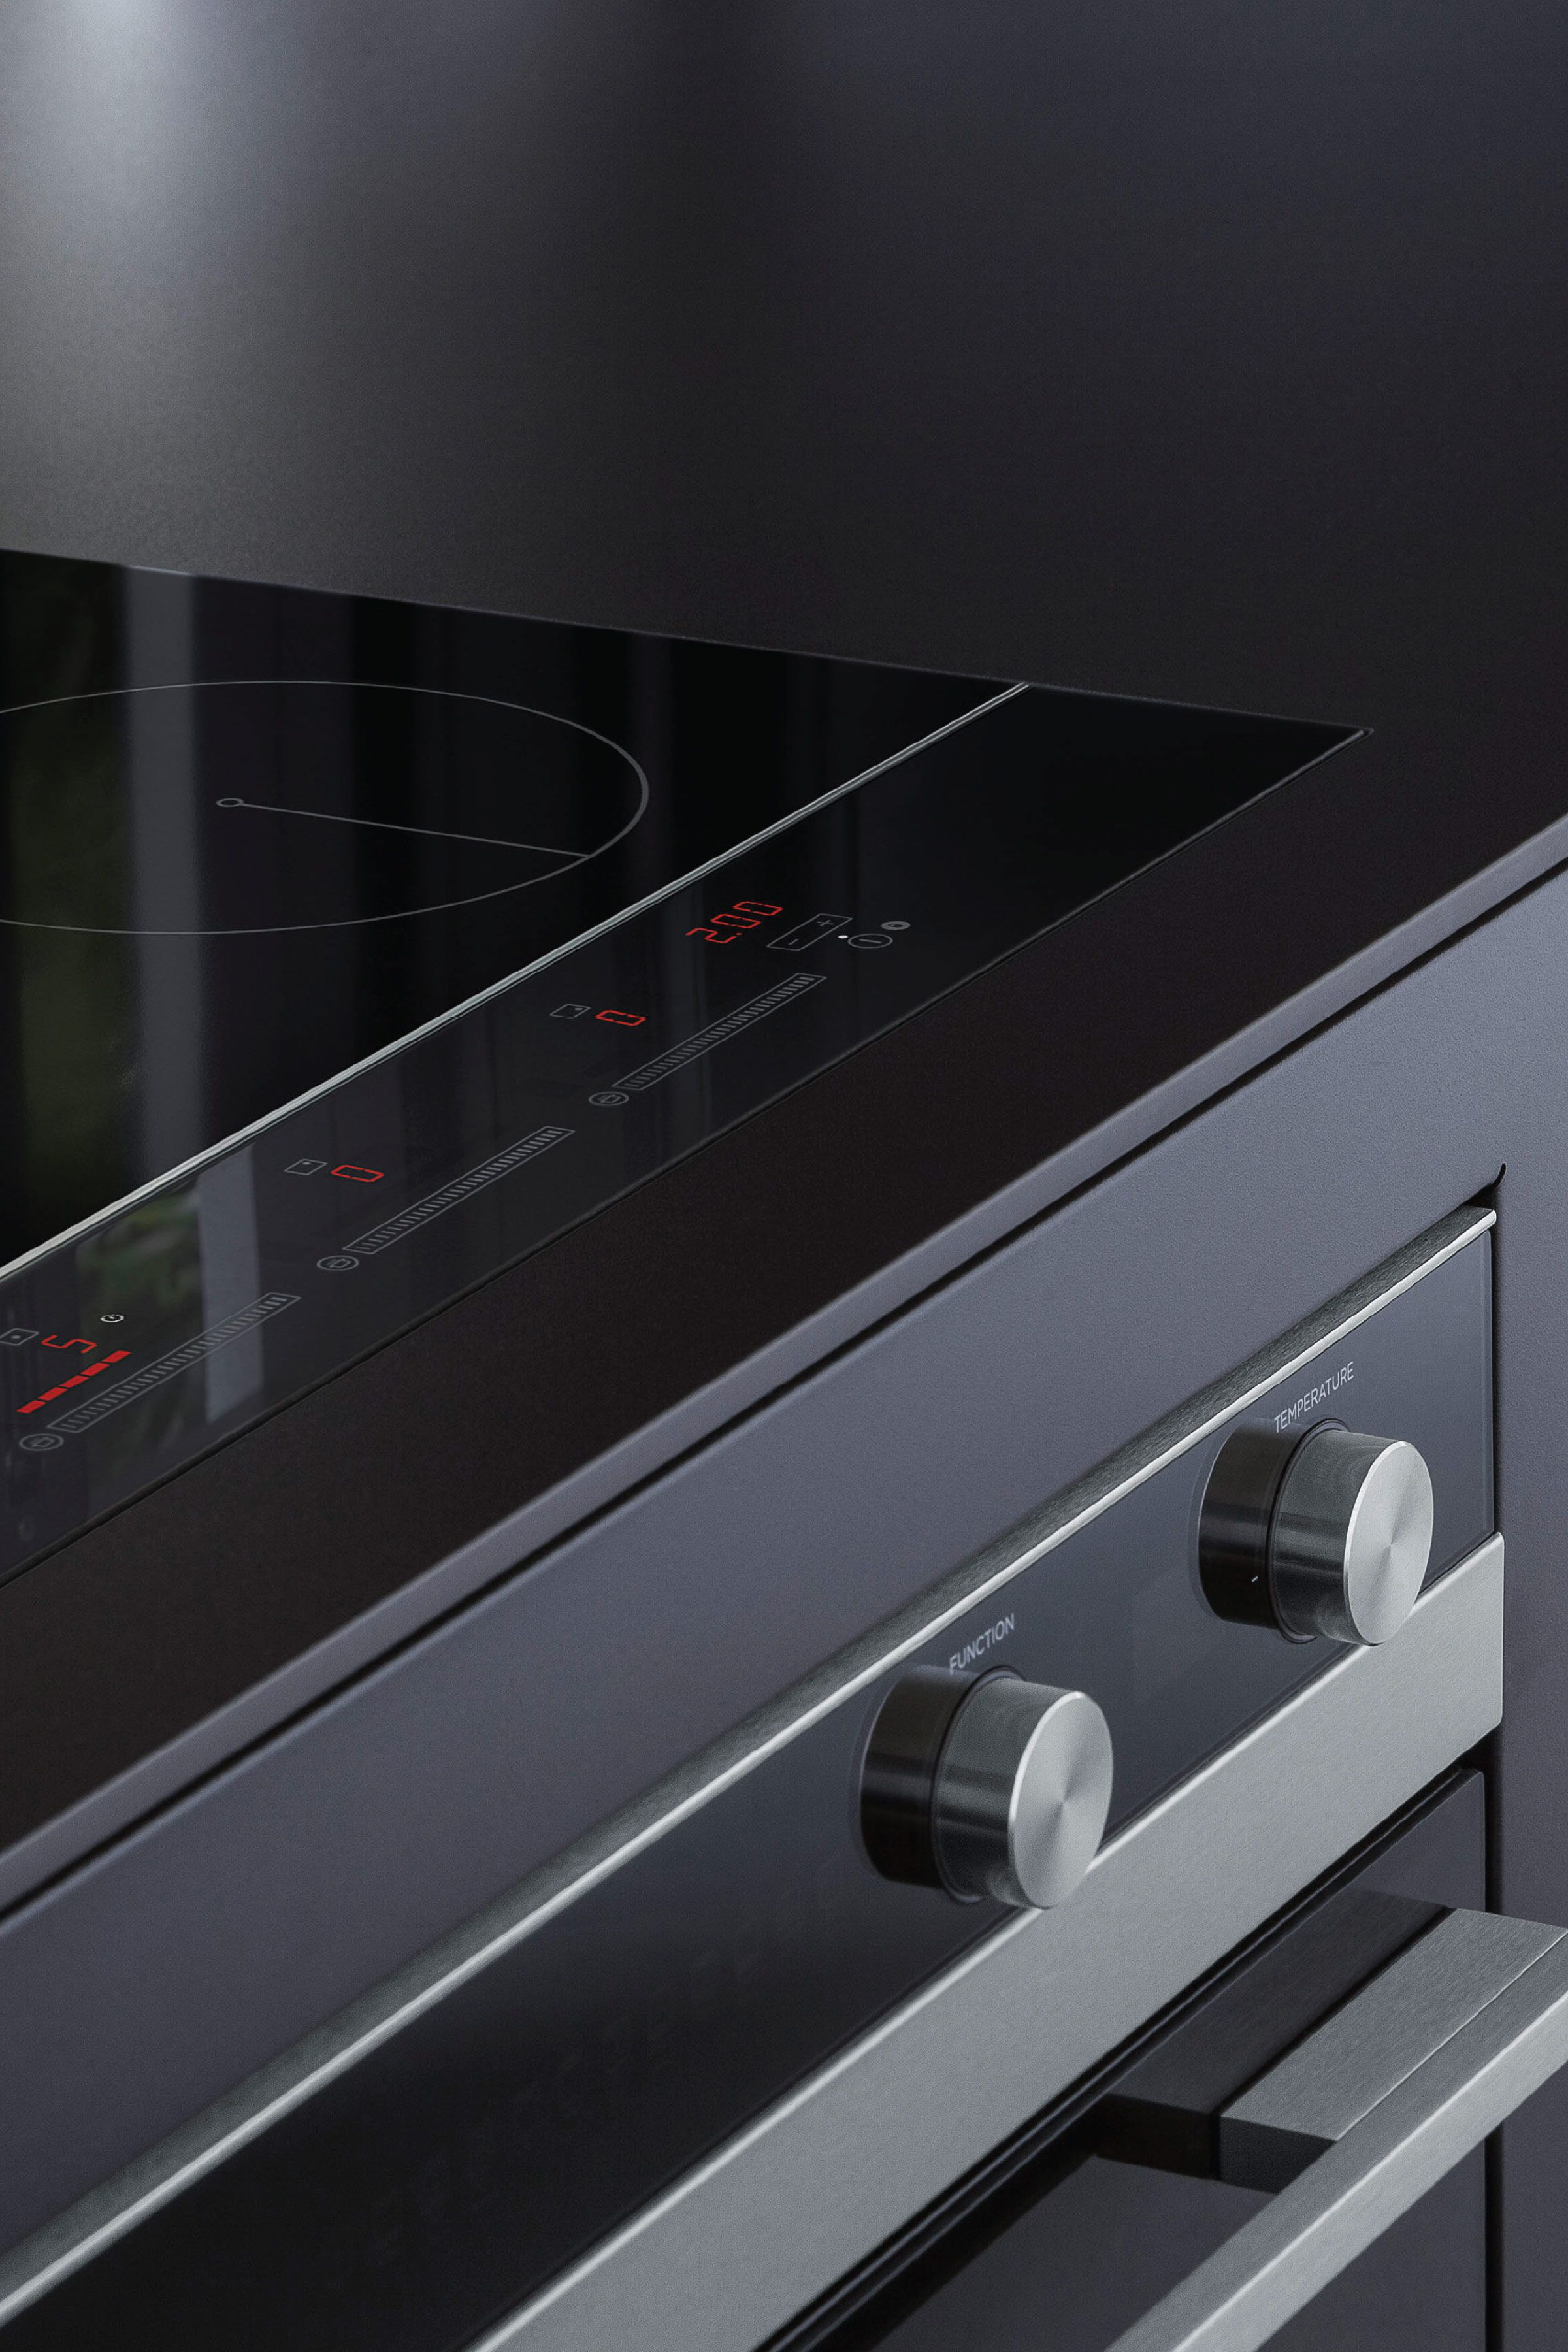 The Fisher & Paykel Builtin Oven and Induction Cooktop